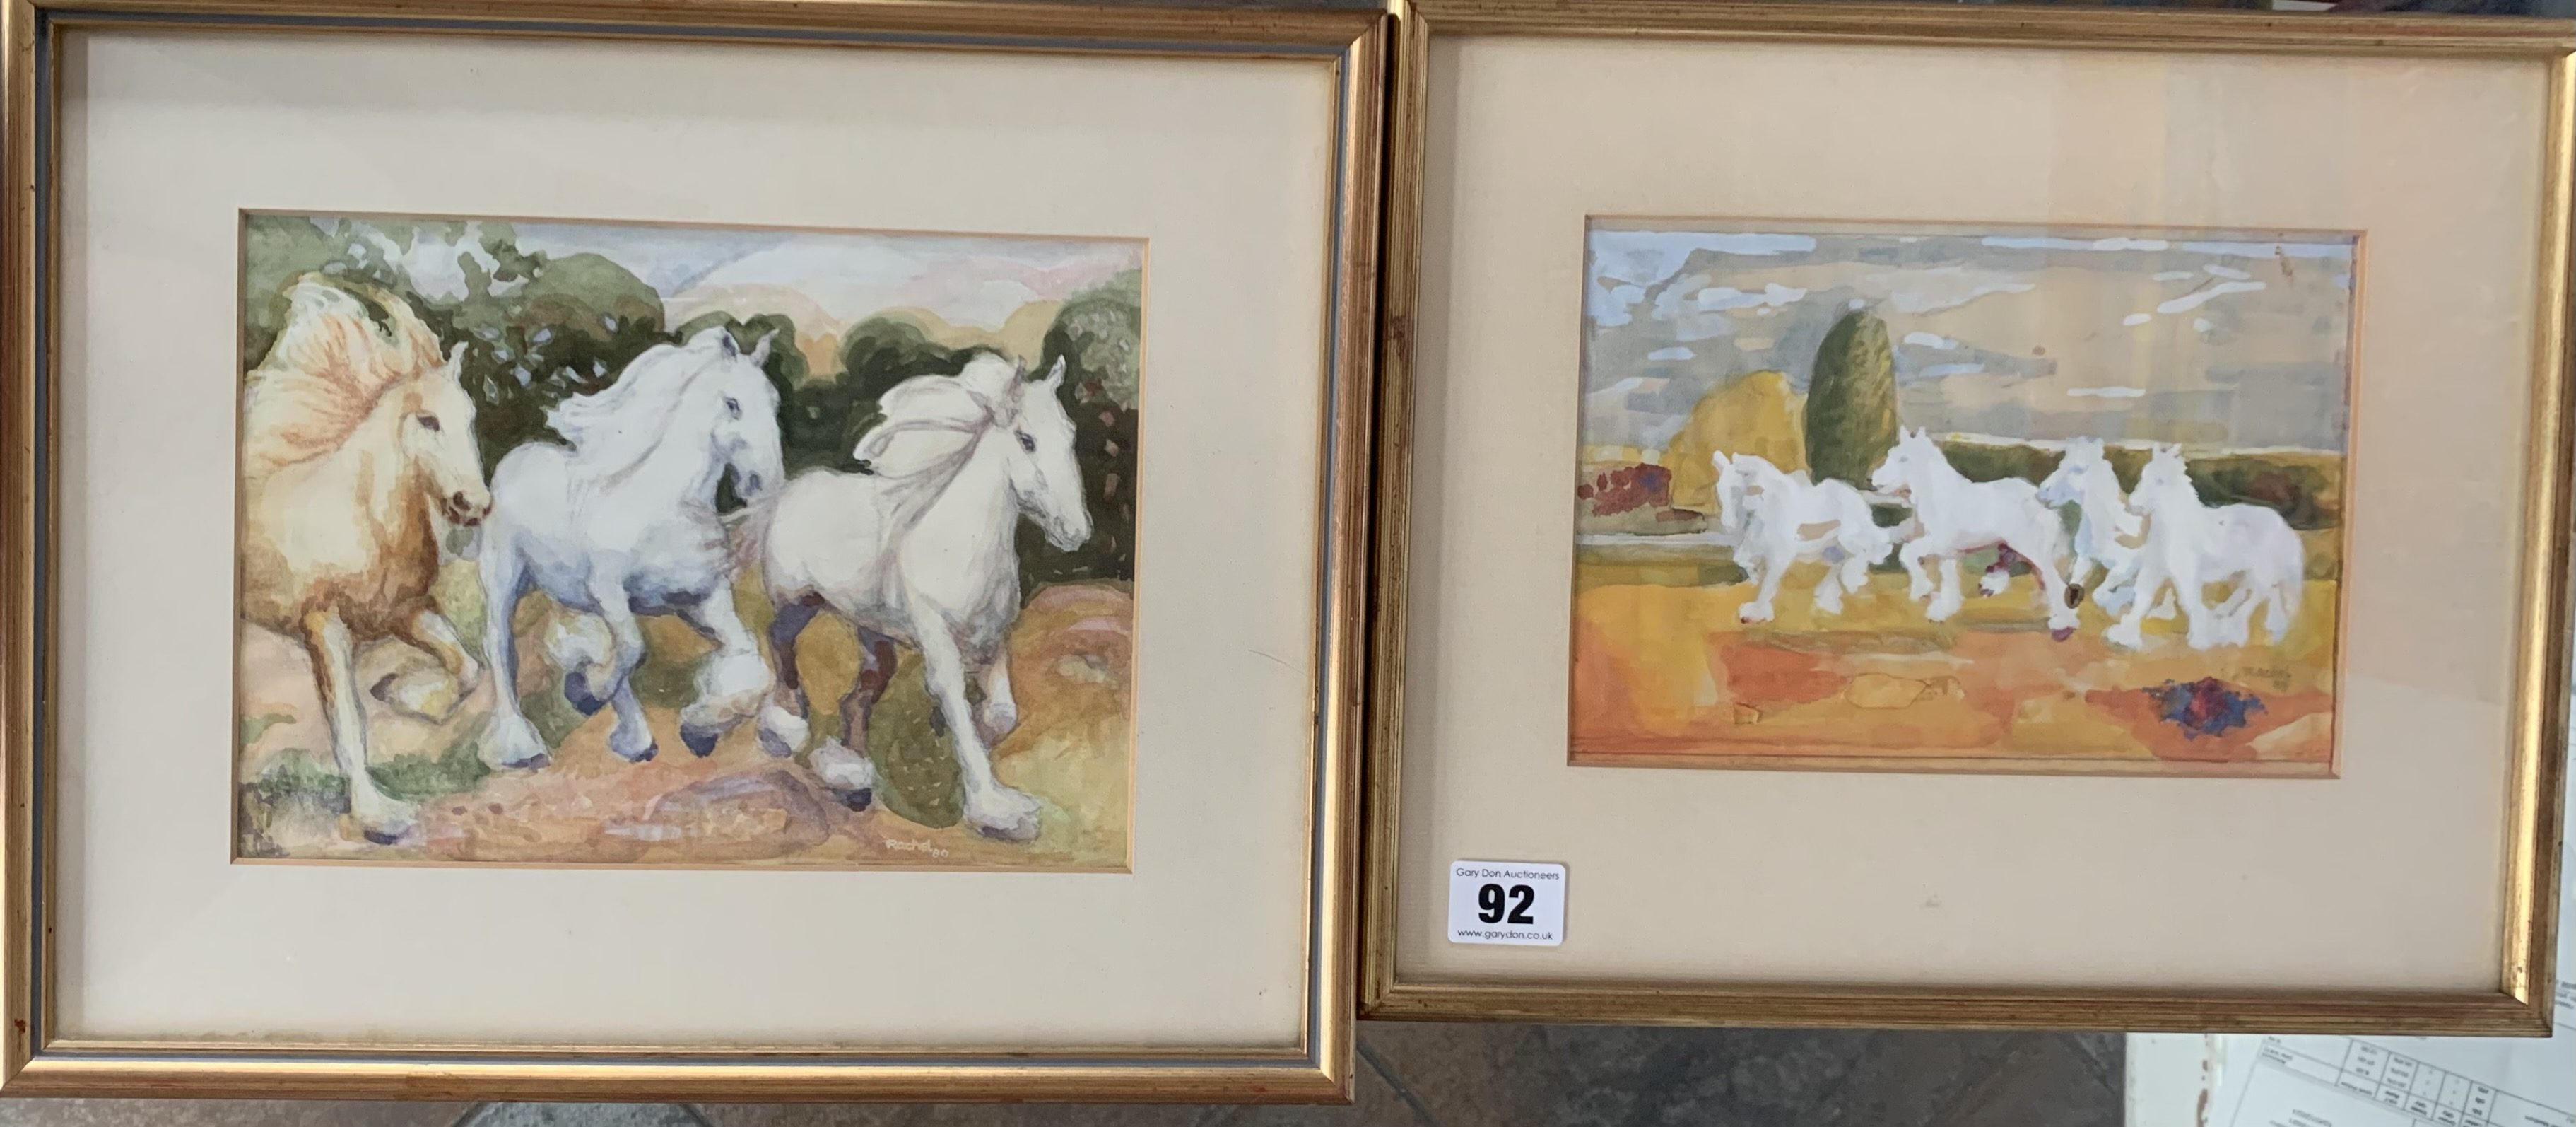 """2 paintings of horses by Rachel, images 8"""" x 5.5"""" & 9"""" x 6.5"""", frames 13"""" x 10.5"""" and 14"""" x 11.5""""."""